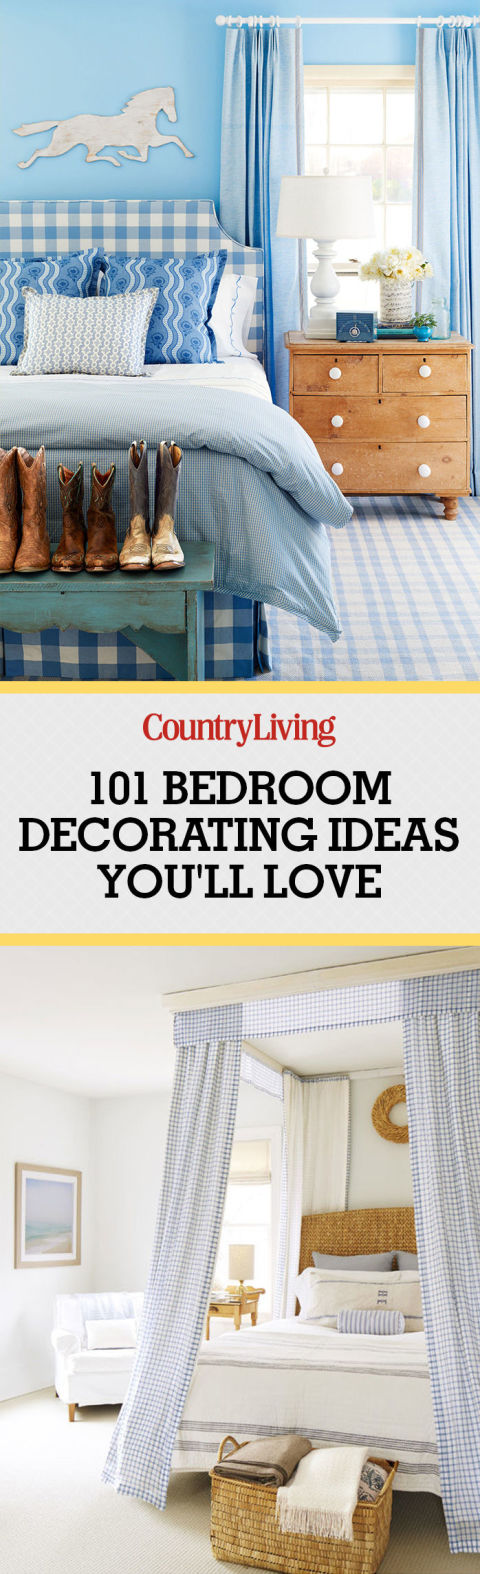 pin these ideas - Country Bedroom Ideas Decorating